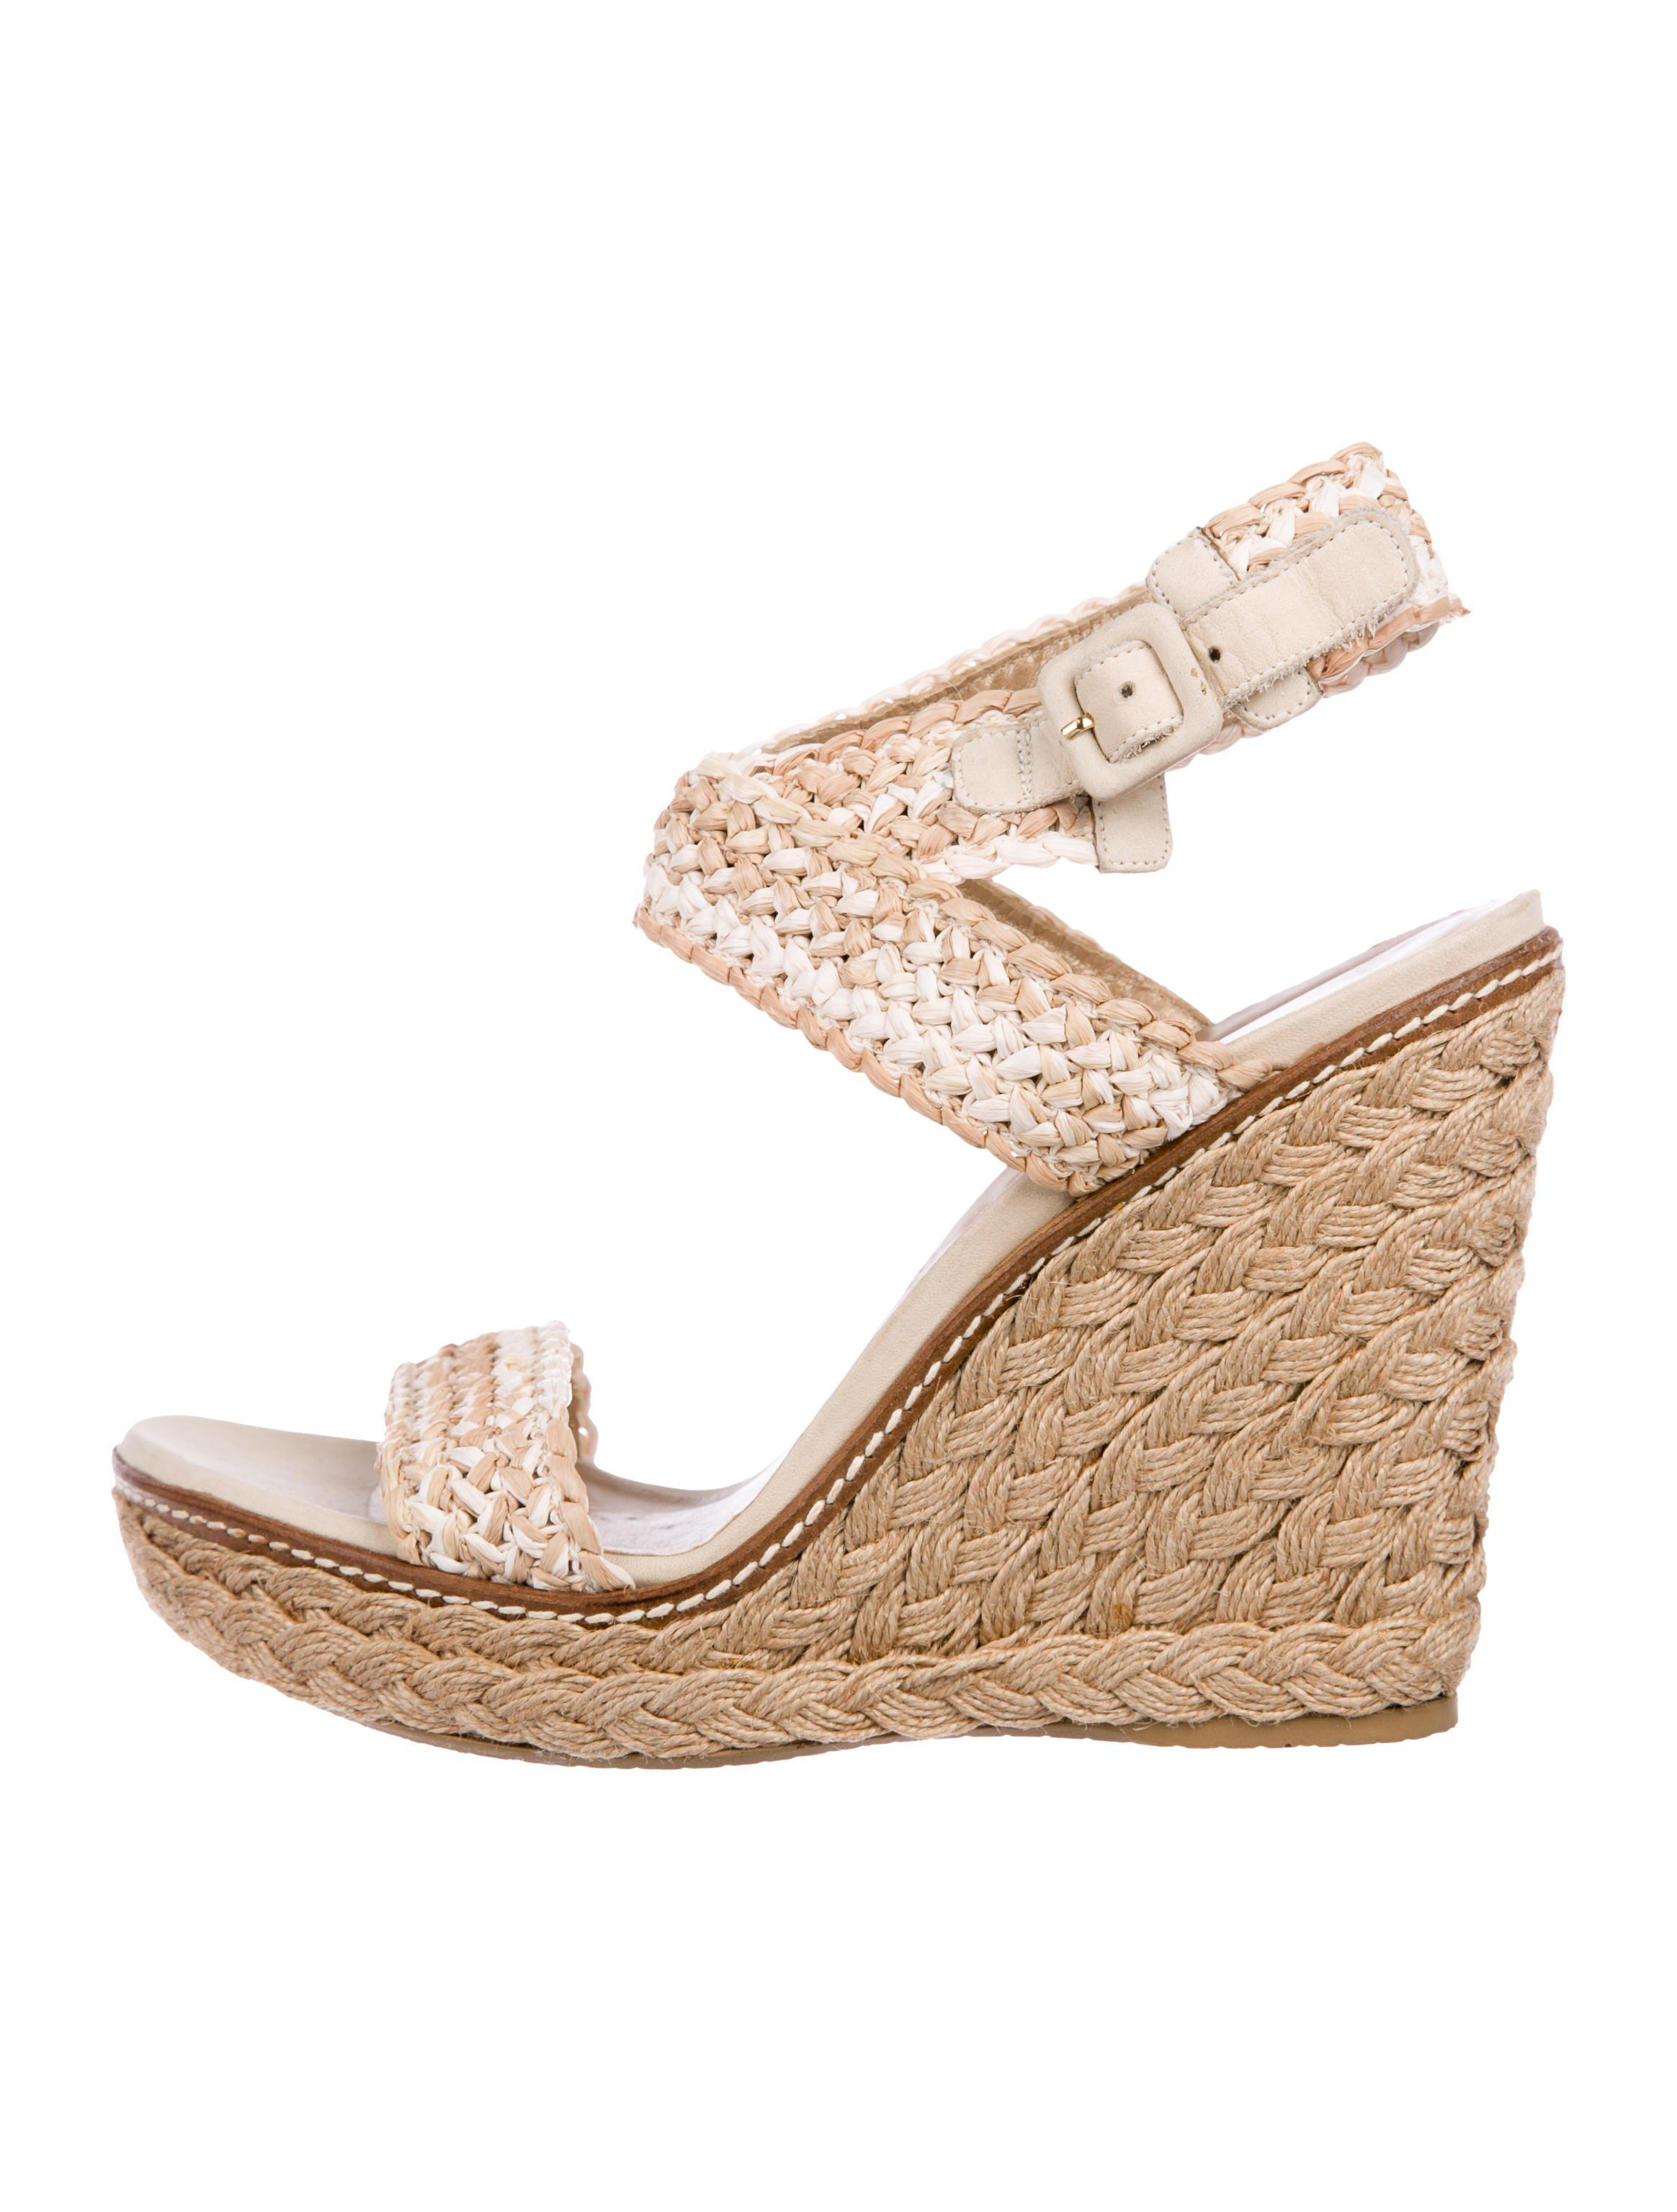 9188954a222e Lyst - Stuart Weitzman Woven Straw Wedge Sandals Tan in Natural